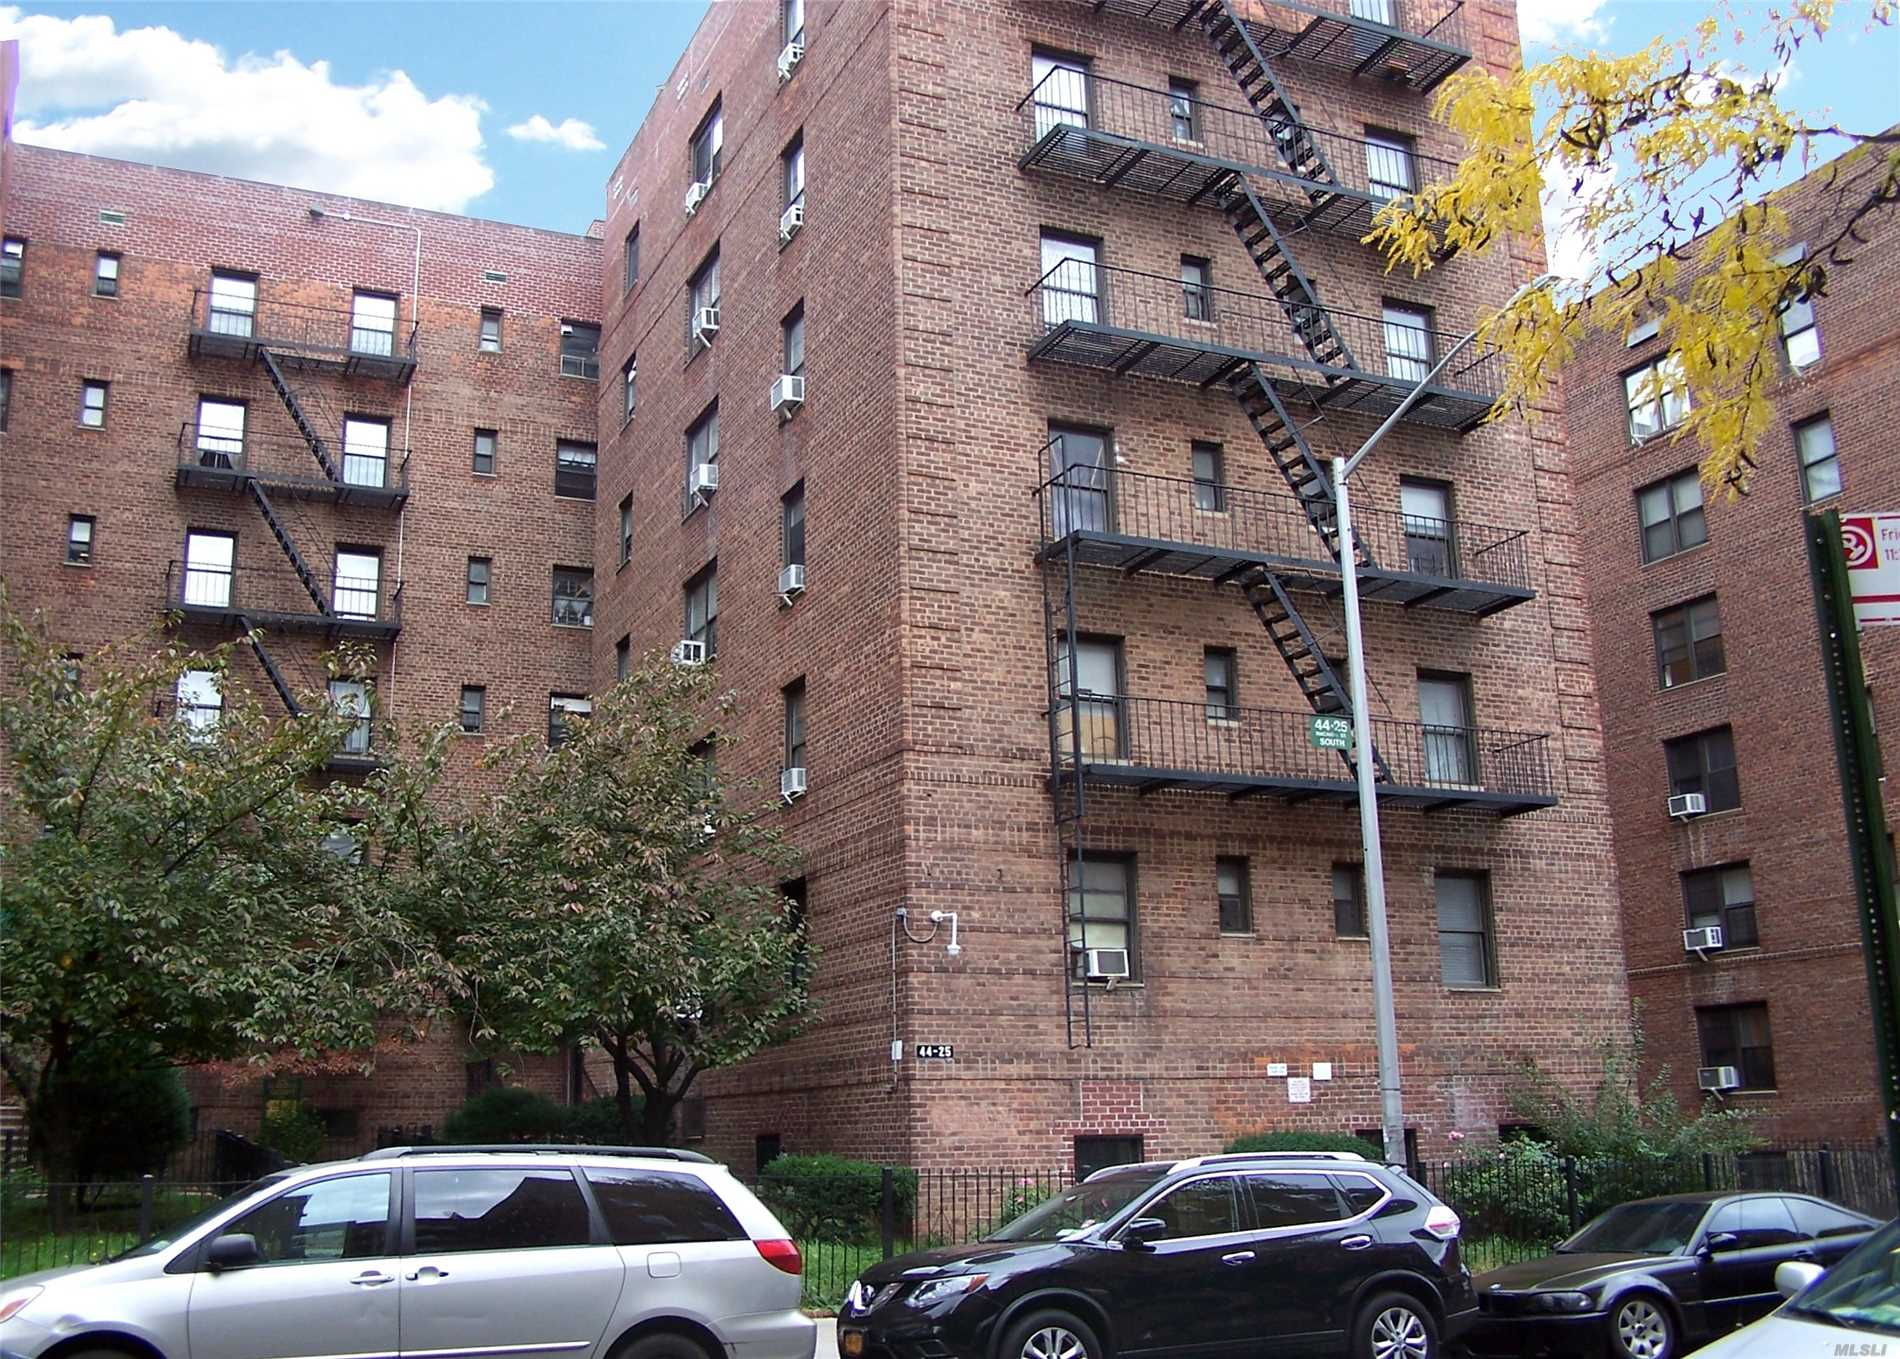 It's Here! A Lovely Renovated Kitchen Greets You As You Walk Into This Beautiful And Conveniently Located Apartment In Elmhurst Gardens Coop Building. Unit Is On The First Floor And Offers A Second Small Bedroom And Wood Flooring Throughout. Laundry Facility In Building. Parking Available With An Additional Fee. Excellent Location, Everything Is Within Minutes; School District 24!! Won't Last!